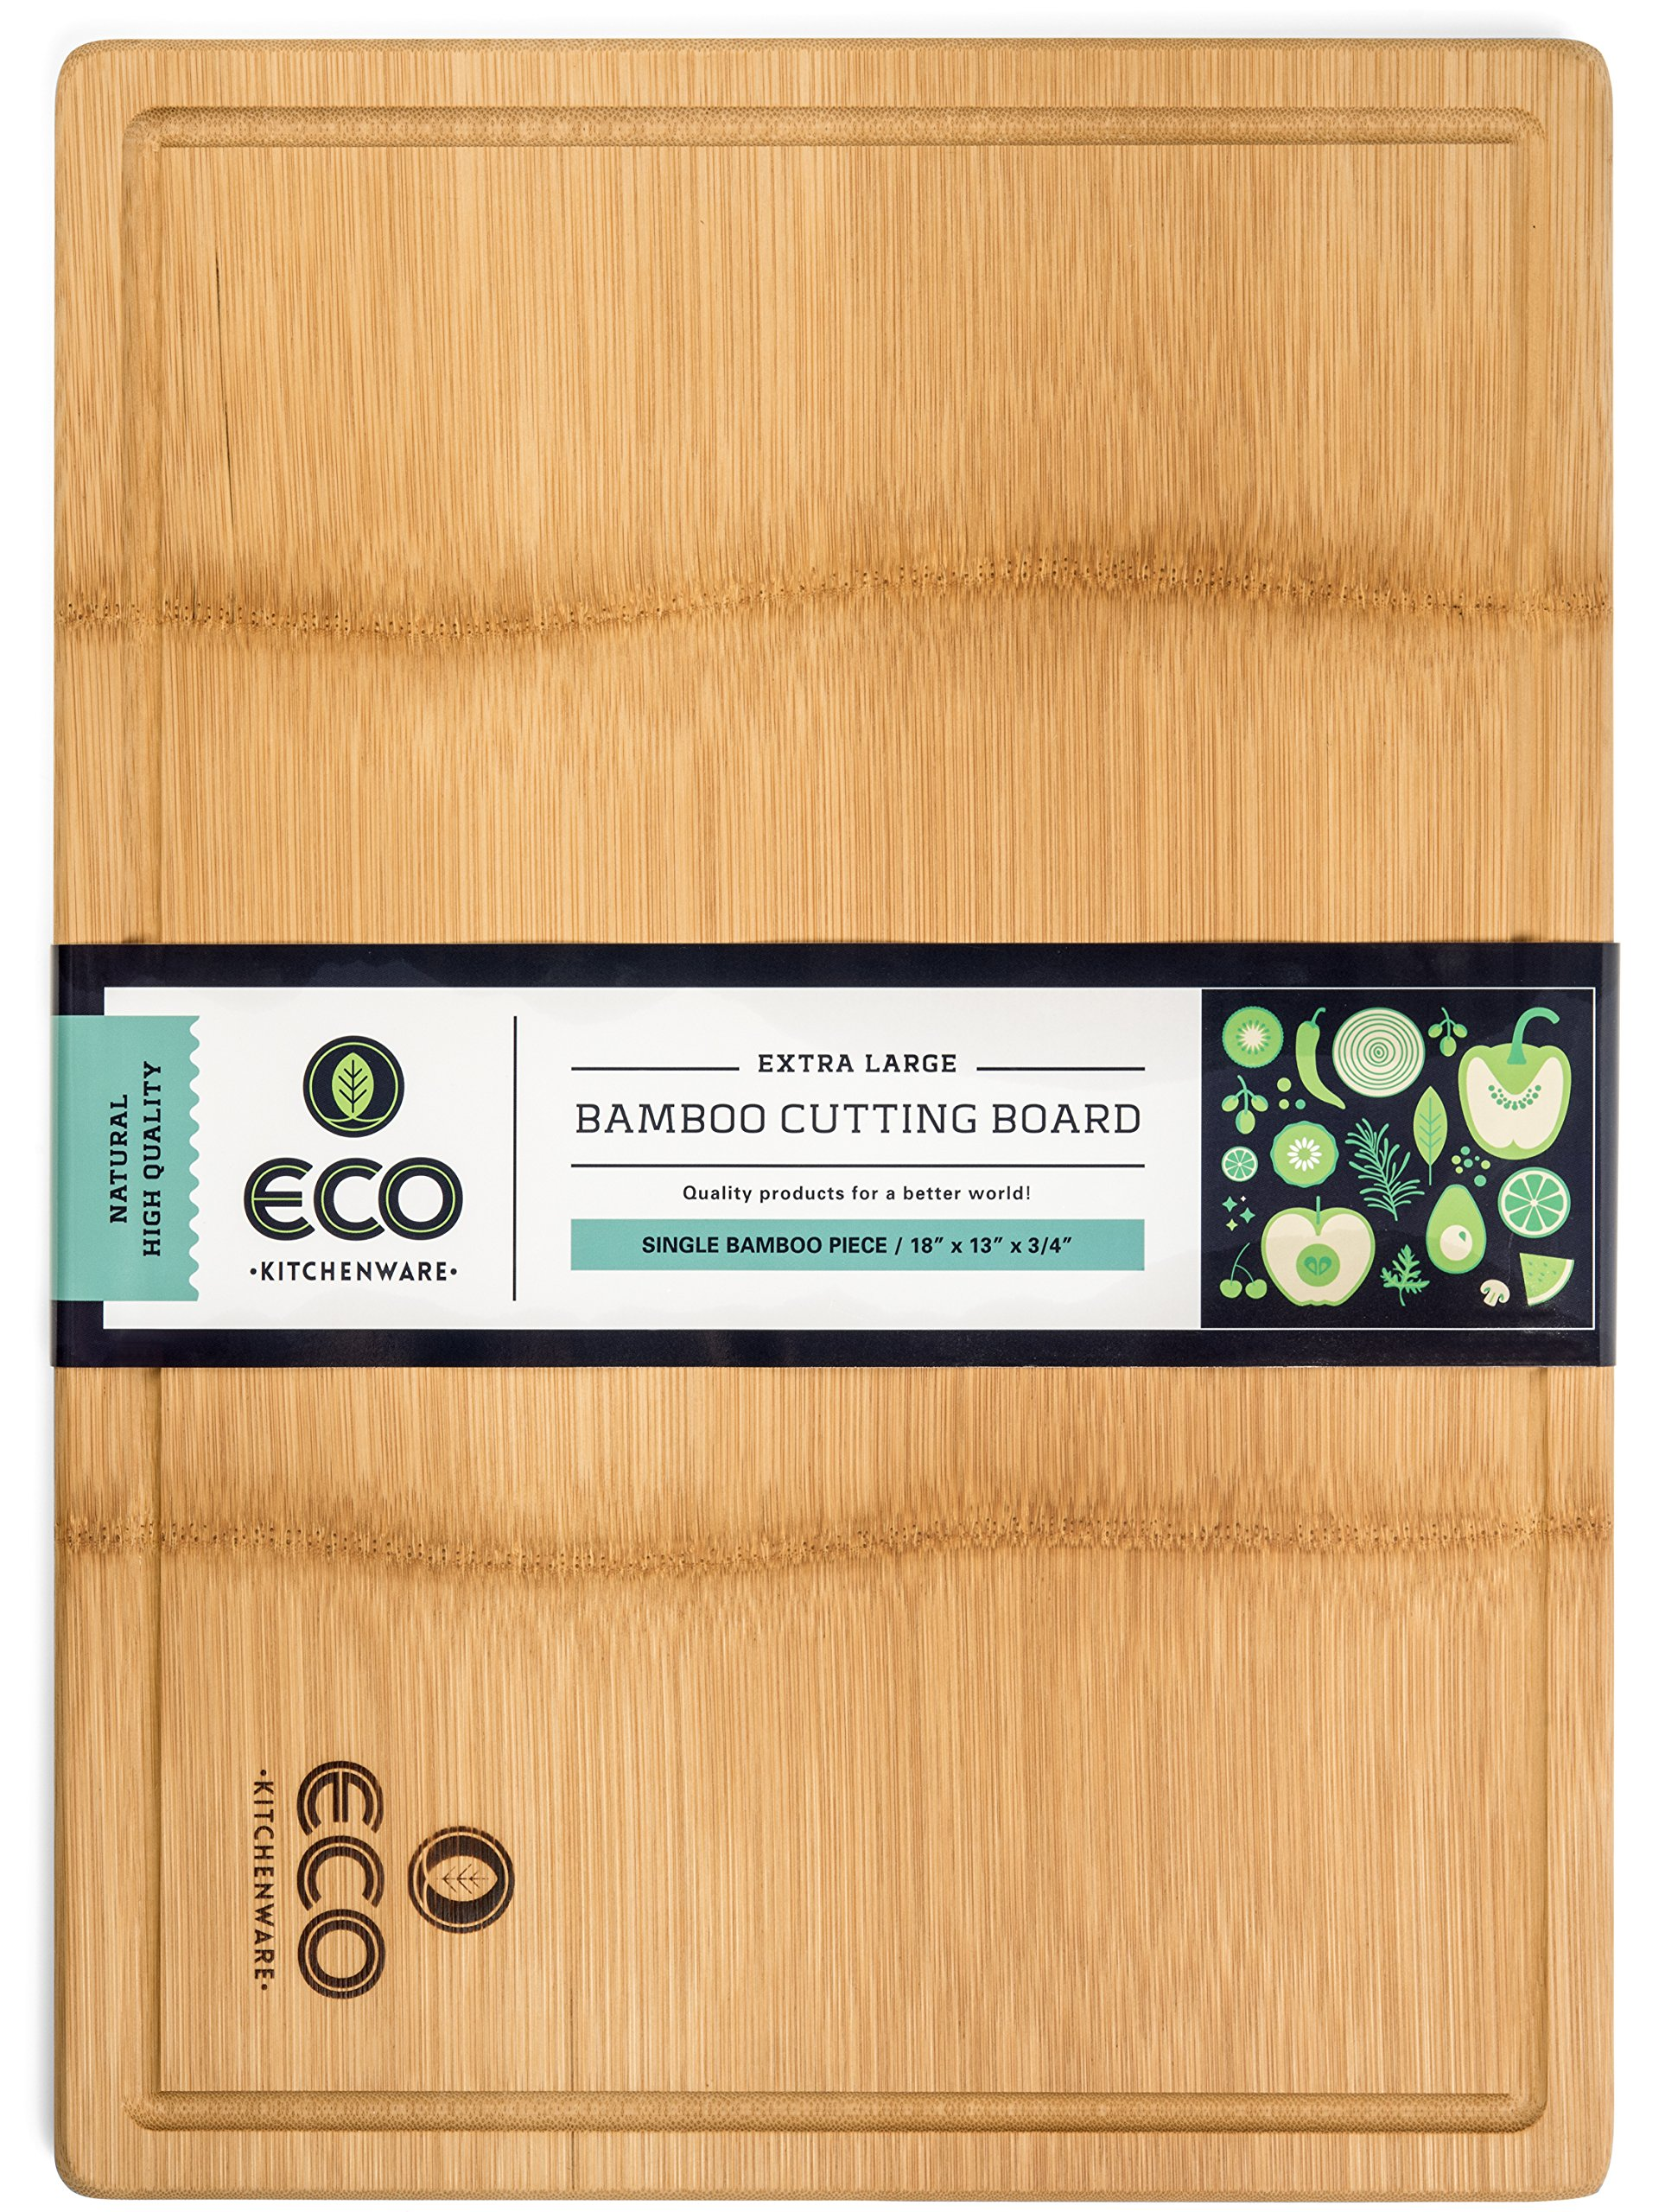 Extra Large Single Piece Surface Bamboo Wood Cutting and Chopping Board 18x13'' with Drip Groove by Eco Kitchenware